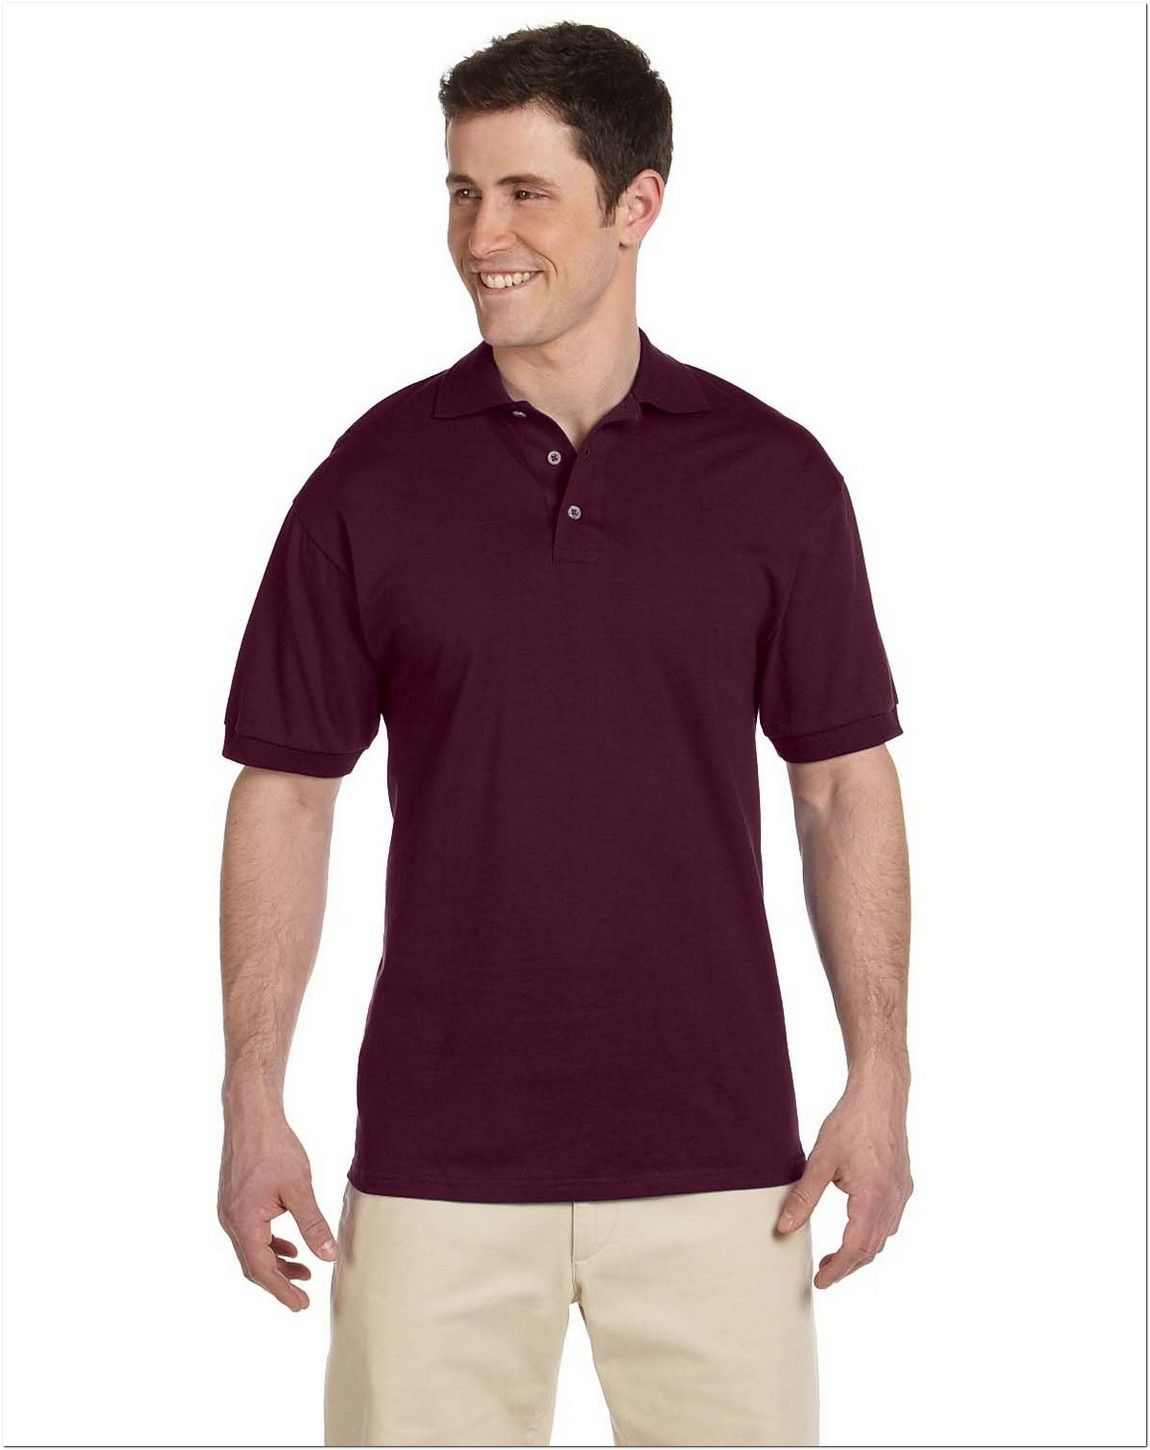 Jerzees J100 Heavyweight Cotton Jersey Polo